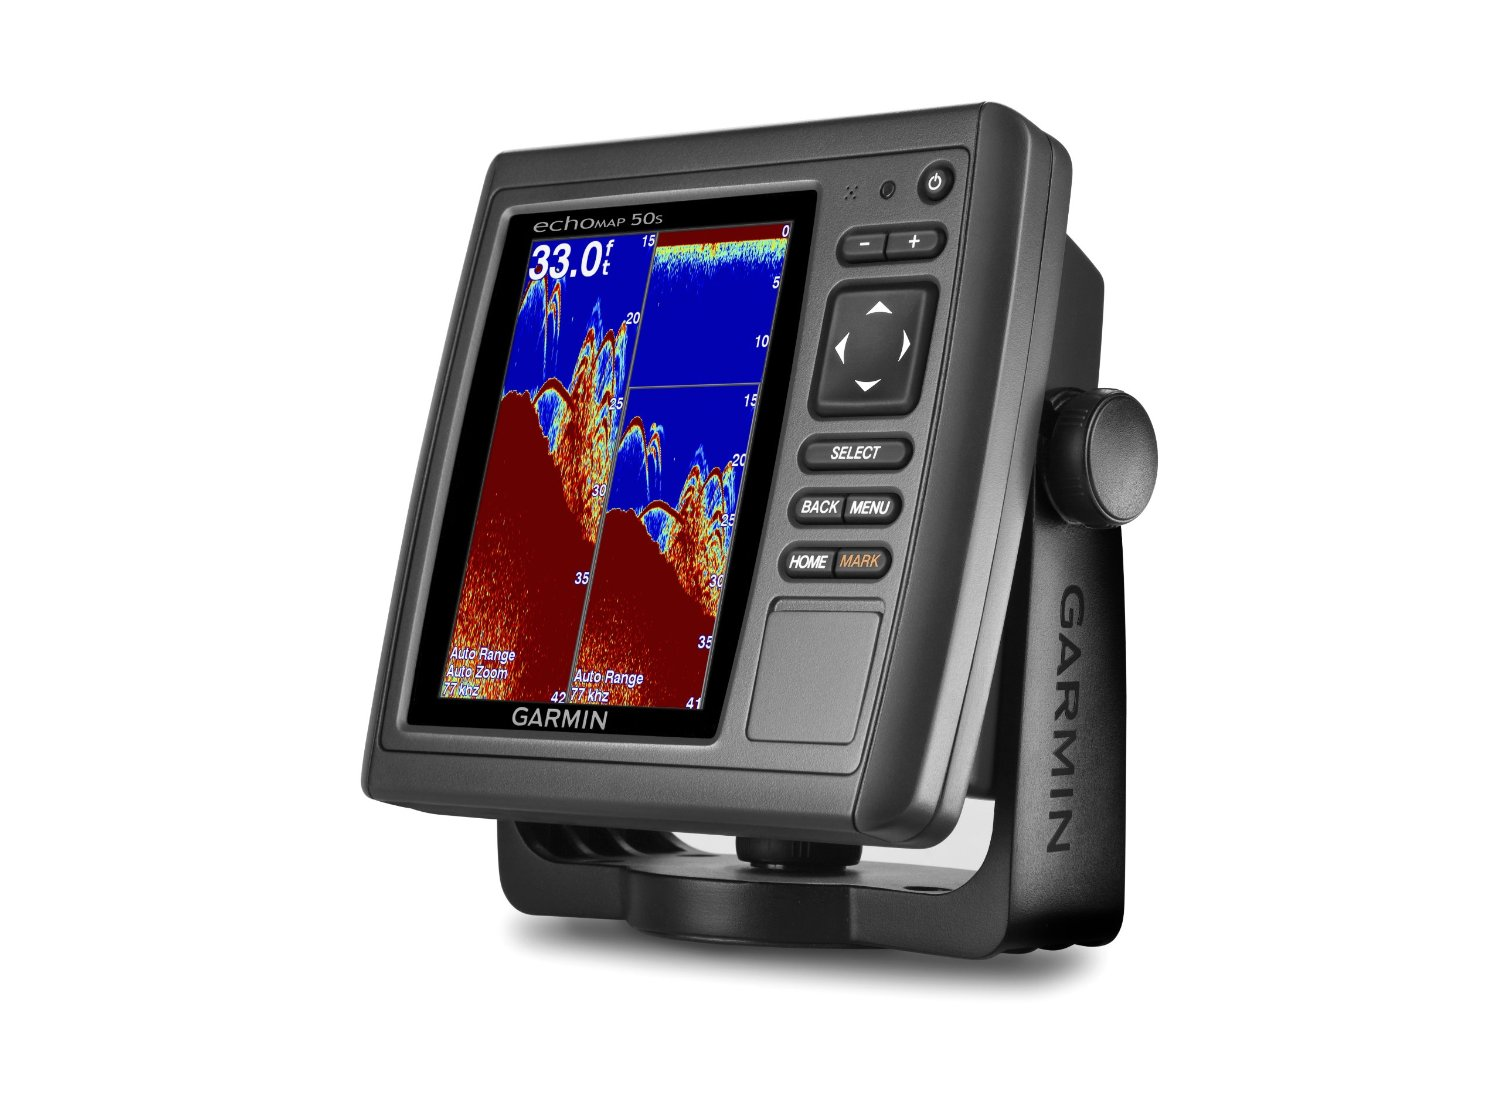 the best fish finder for small boats and kayaks